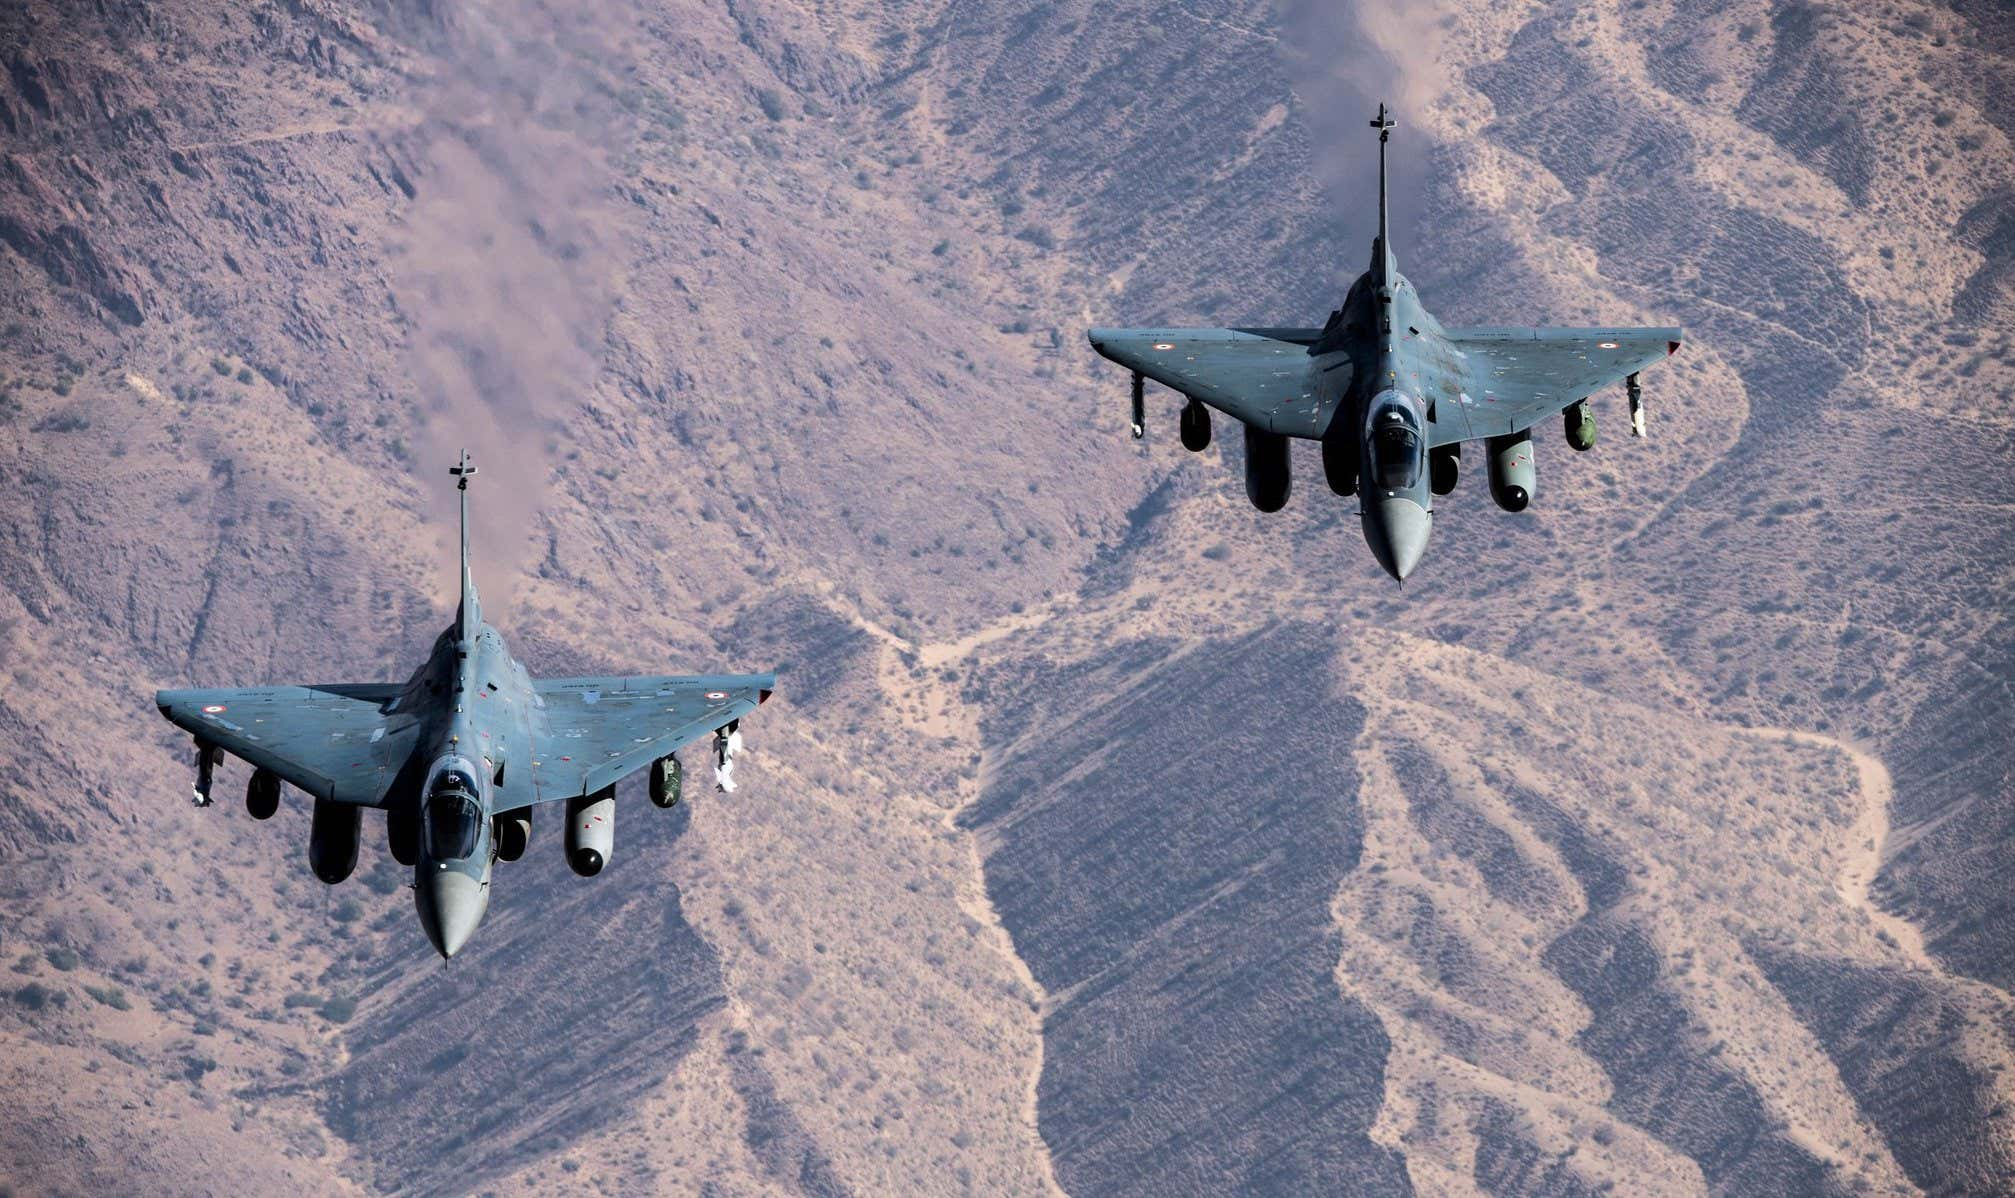 A pair of Tejas Light Combat Aircraft in formation. Progress on signing off on orders for the Tejas has been slow and there remain question marks over its capabilities and growth potential.